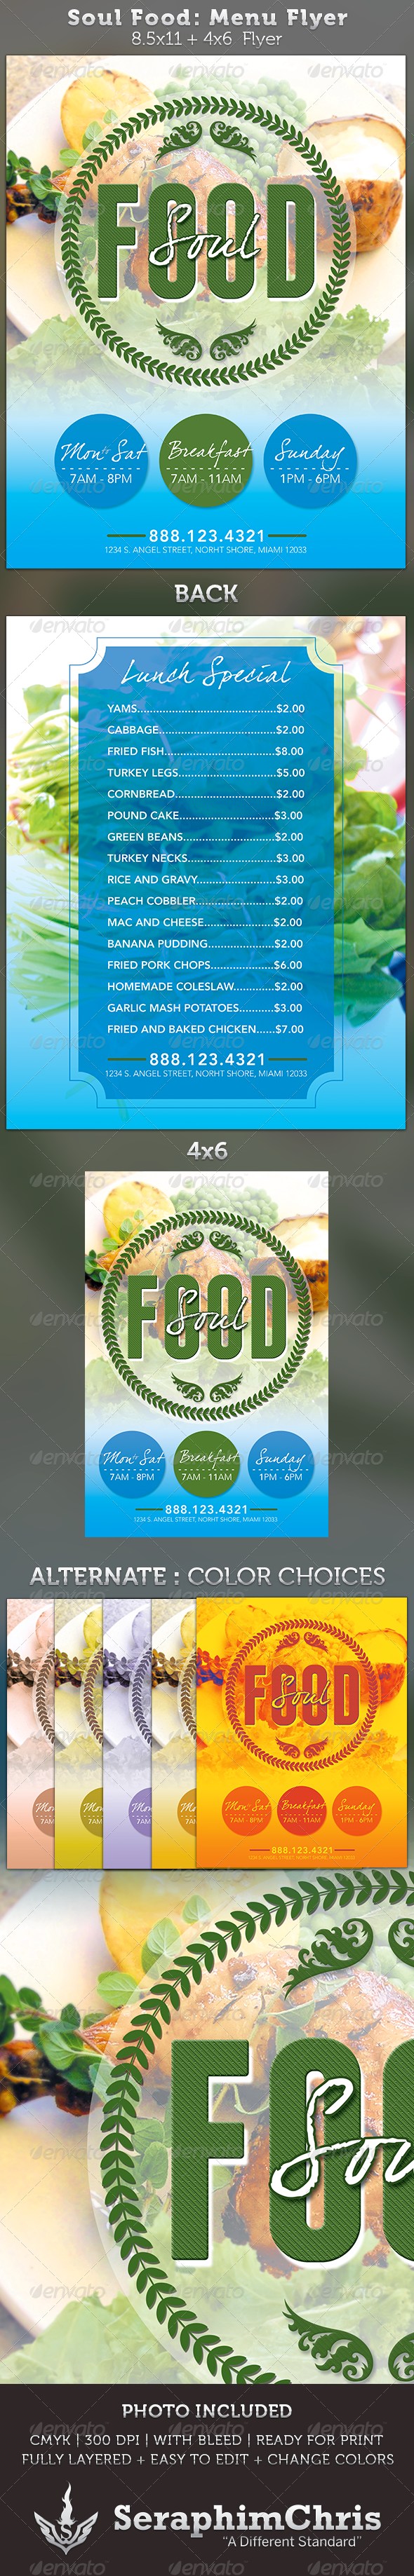 GraphicRiver Soul Food Menu Flyer Template 3441566